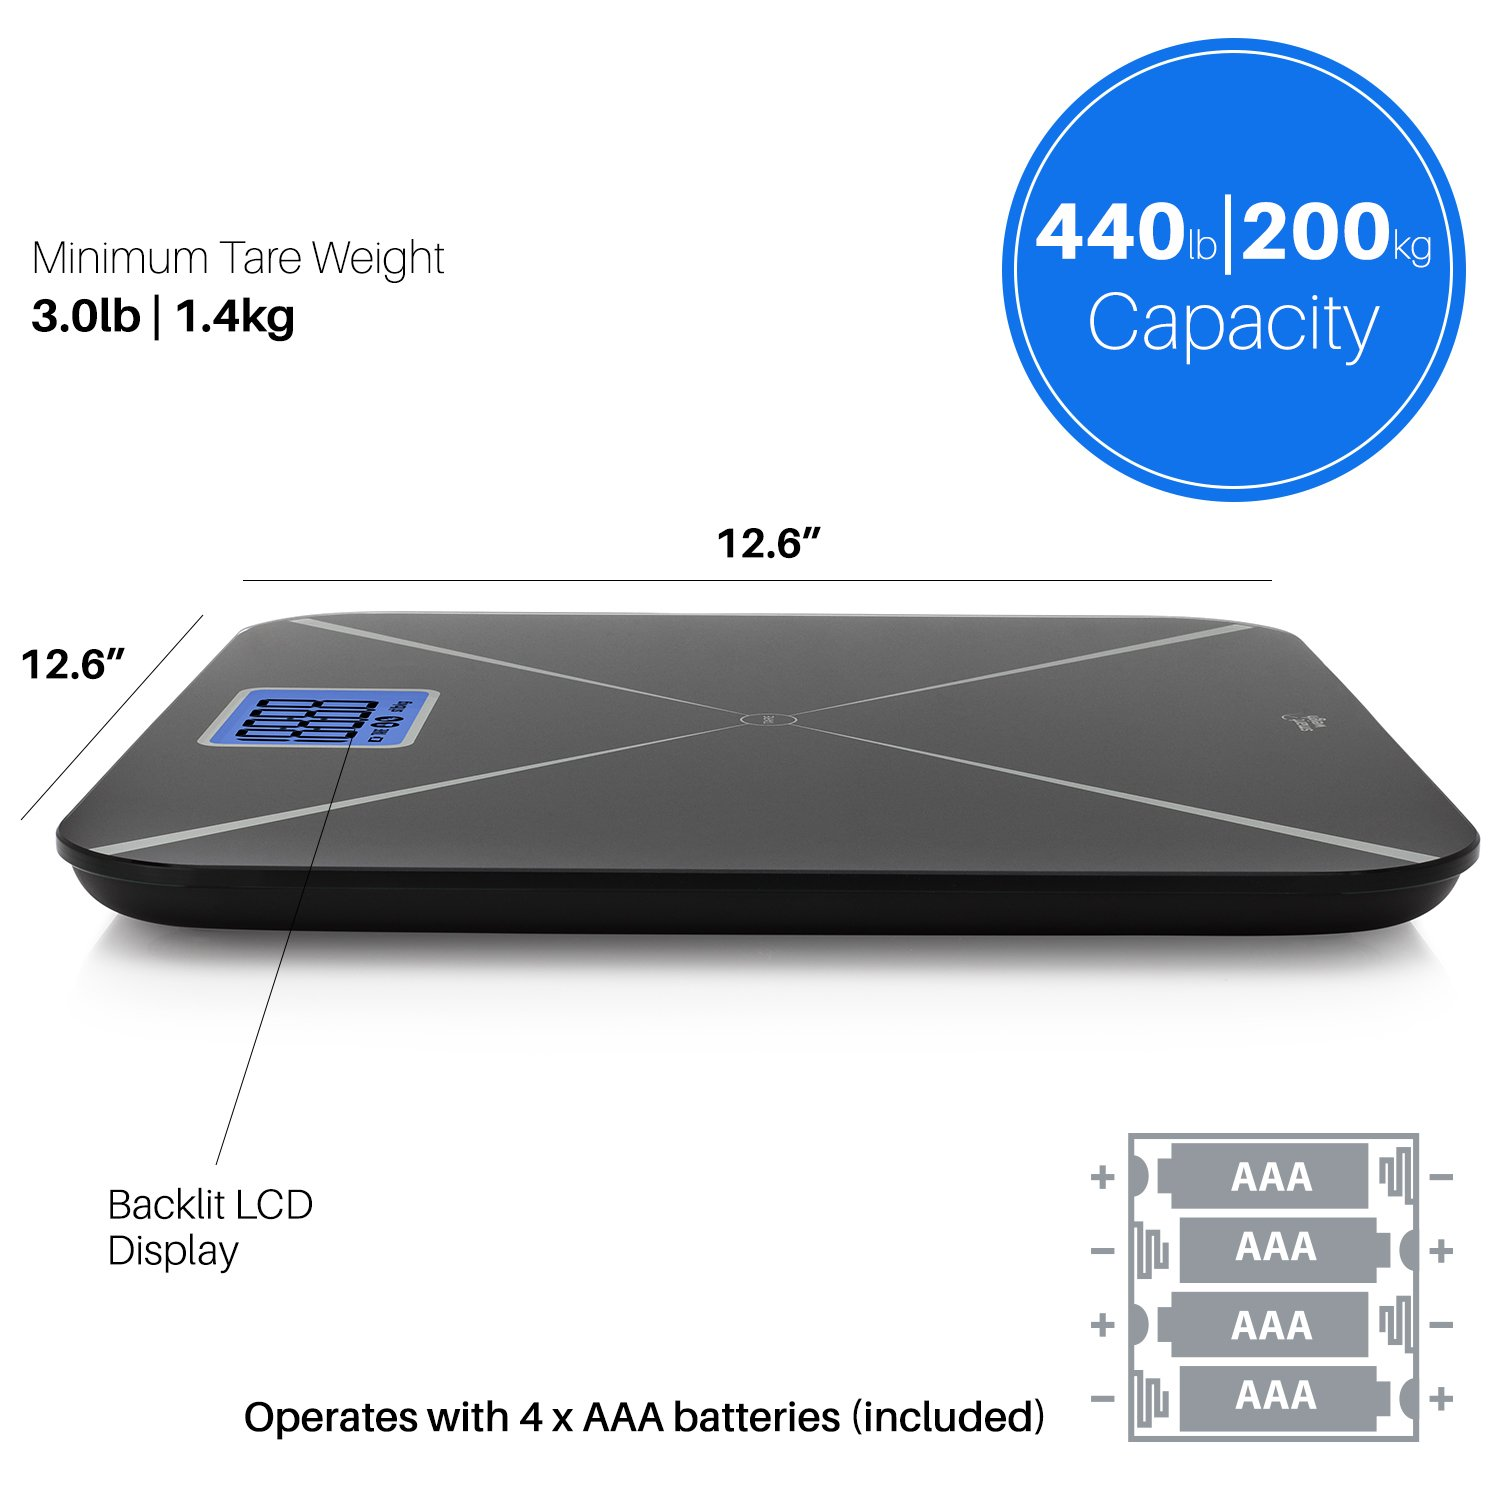 Smart Weigh Digital Body Weight Scale with Baby or Pet Tare Weighing Technology, Bathroom Scale with Large LCD Display and Tempered Glass Platform, 440lbs/200kg Capacity (Black) by Smart Weigh (Image #8)